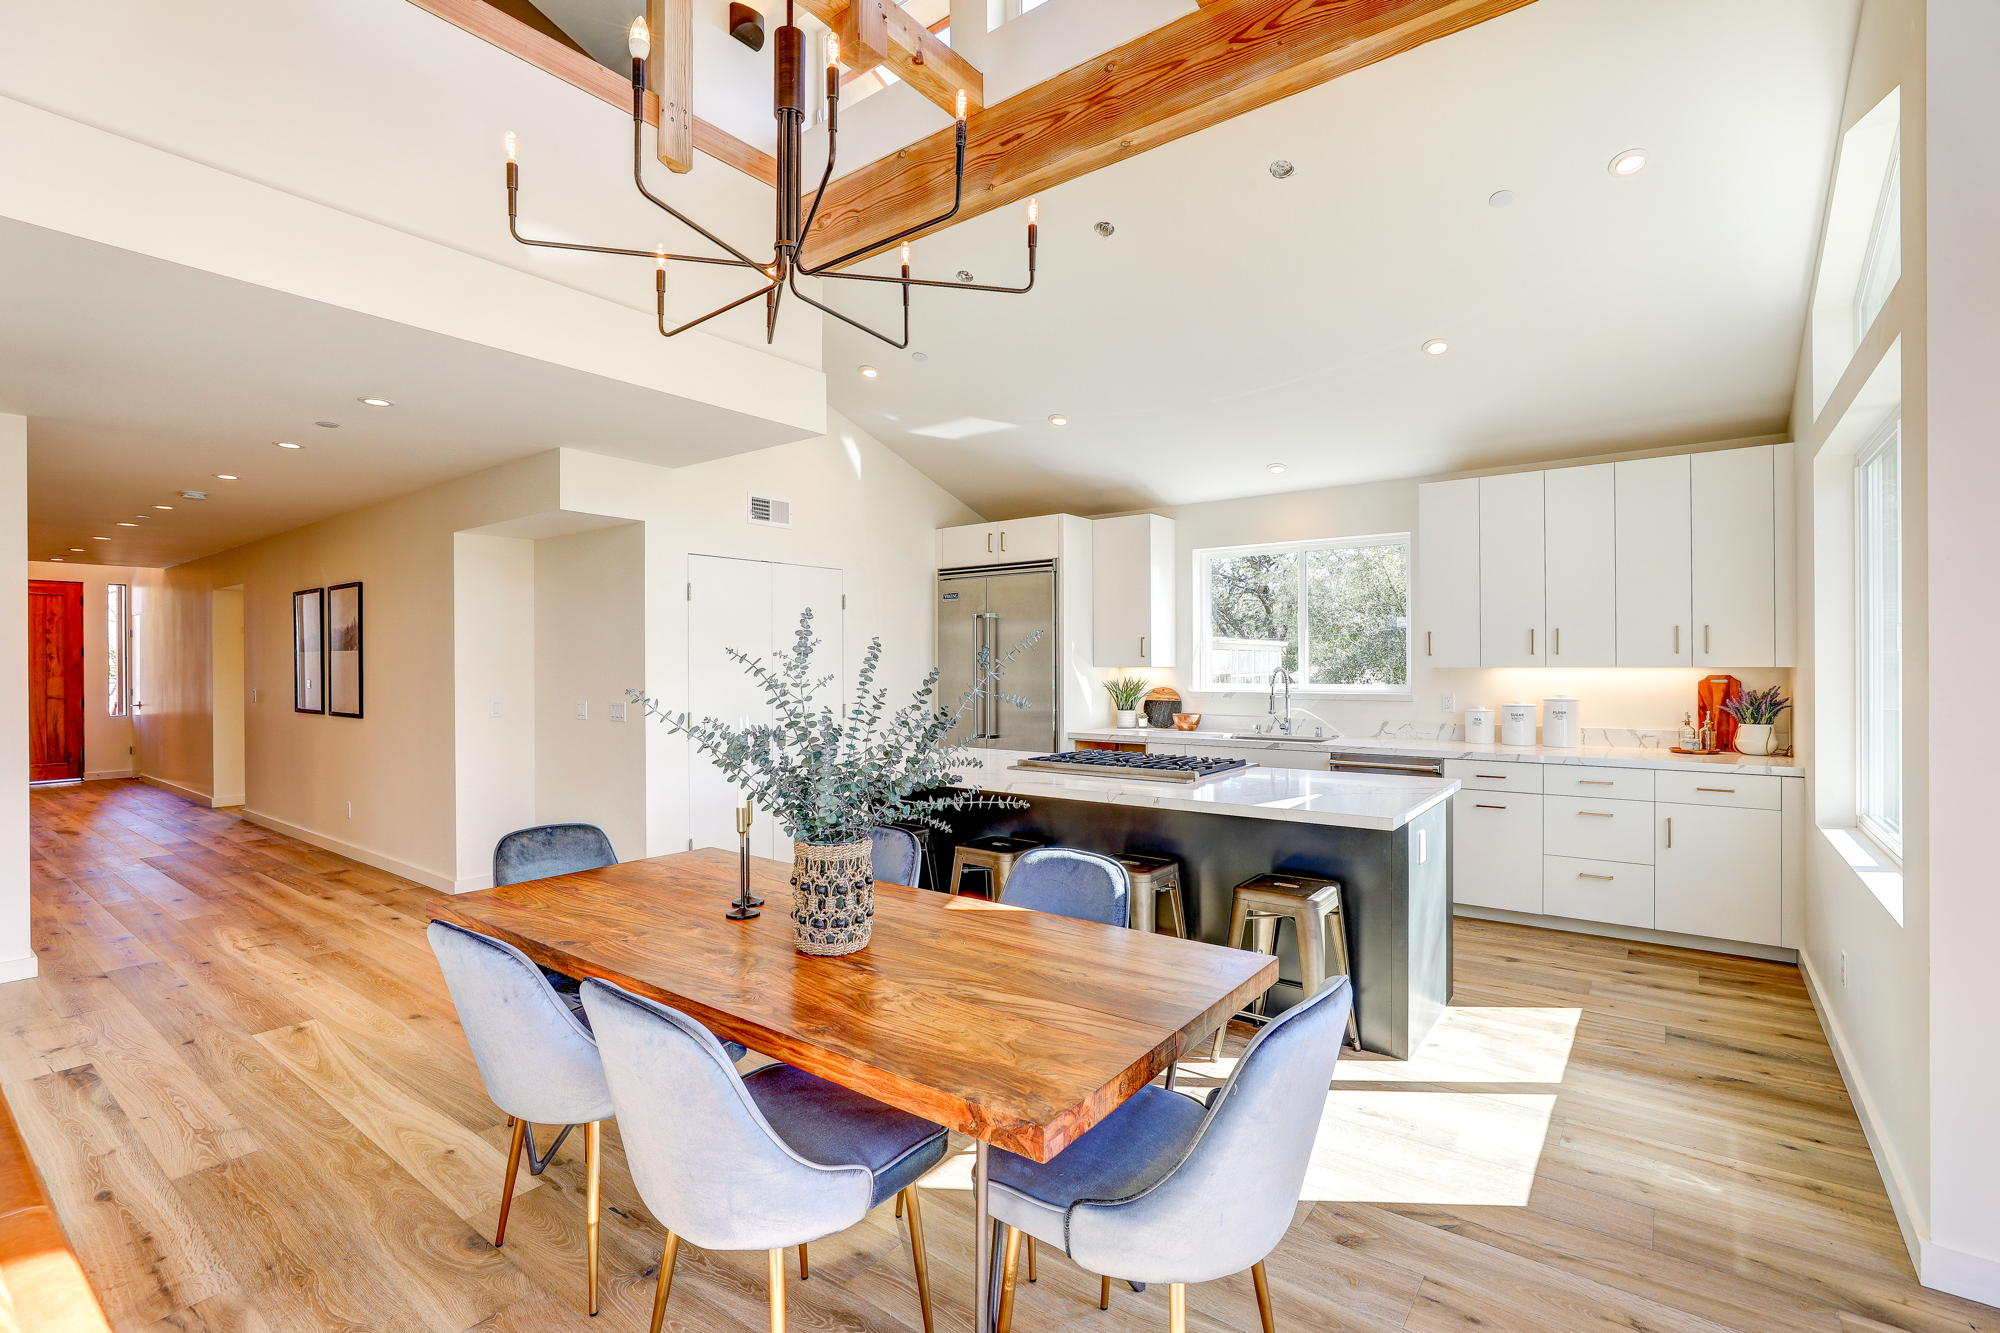 38 Ryan Avenue, Mill Valley - Sycamore Park Homes for sale - 19- Listed by Team Own Marin with Compass Real Estate.jpg